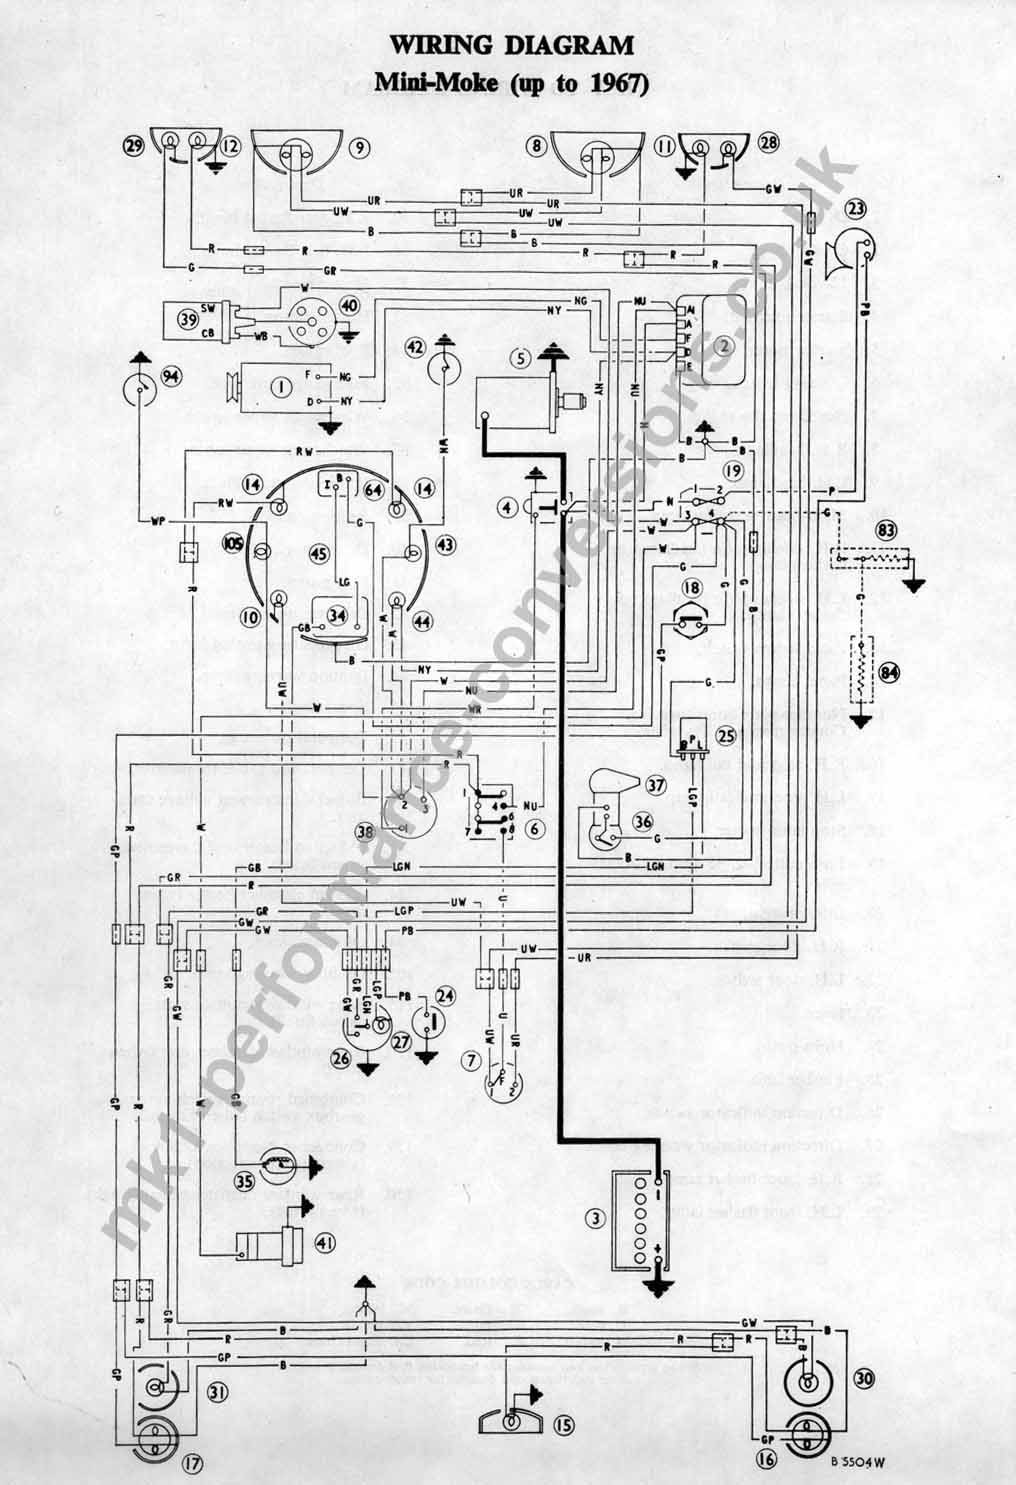 mk1_moke_wiring technical (electrical) escort mk1 wiring diagram at honlapkeszites.co